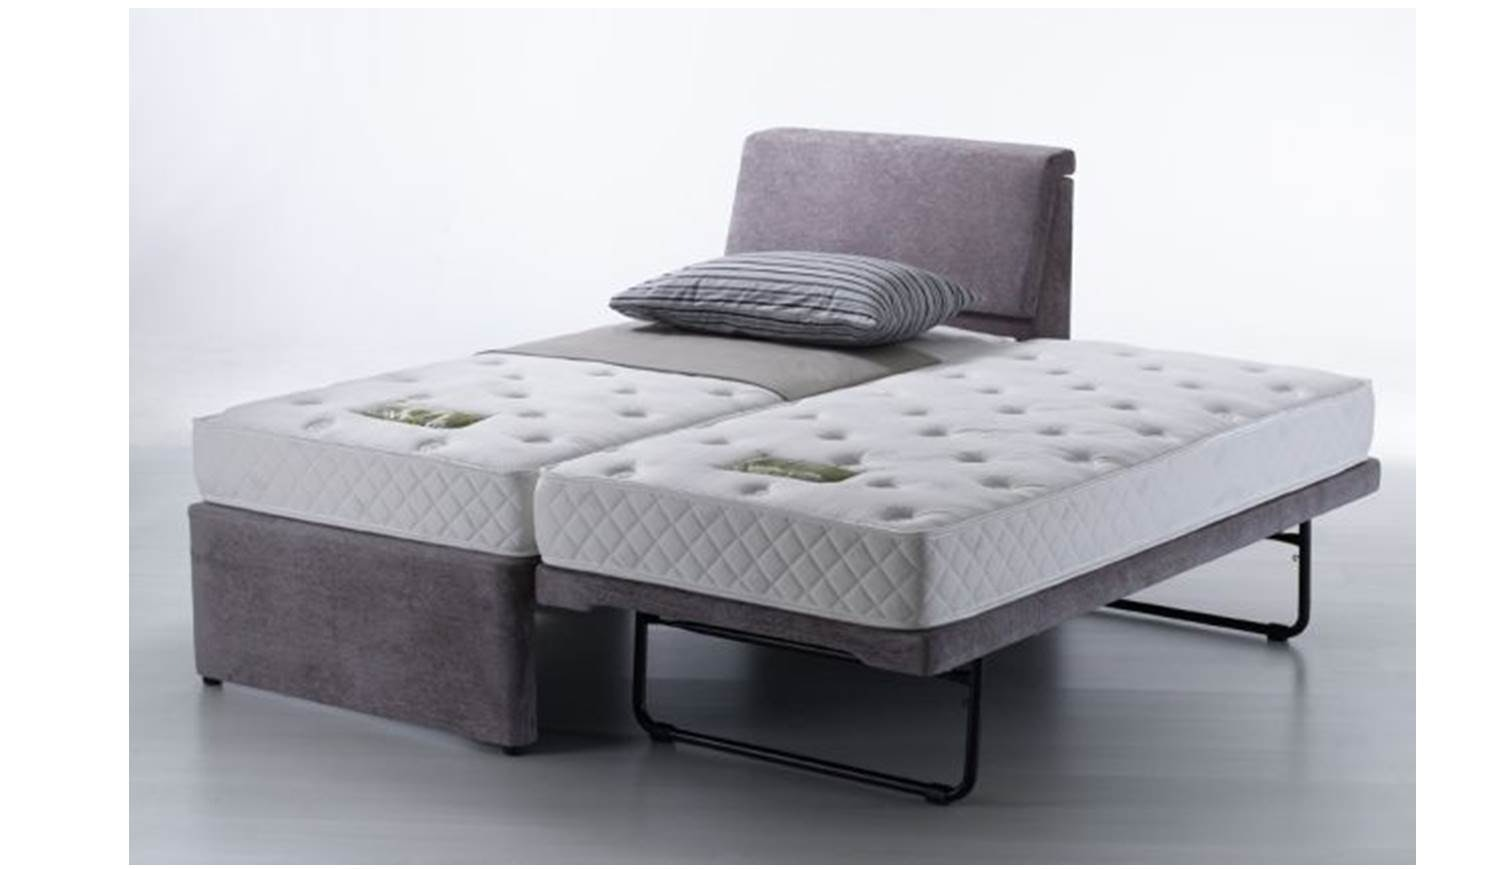 Unice Single Bed Frame With Single Pullout Bed Harvey Norman Singapore